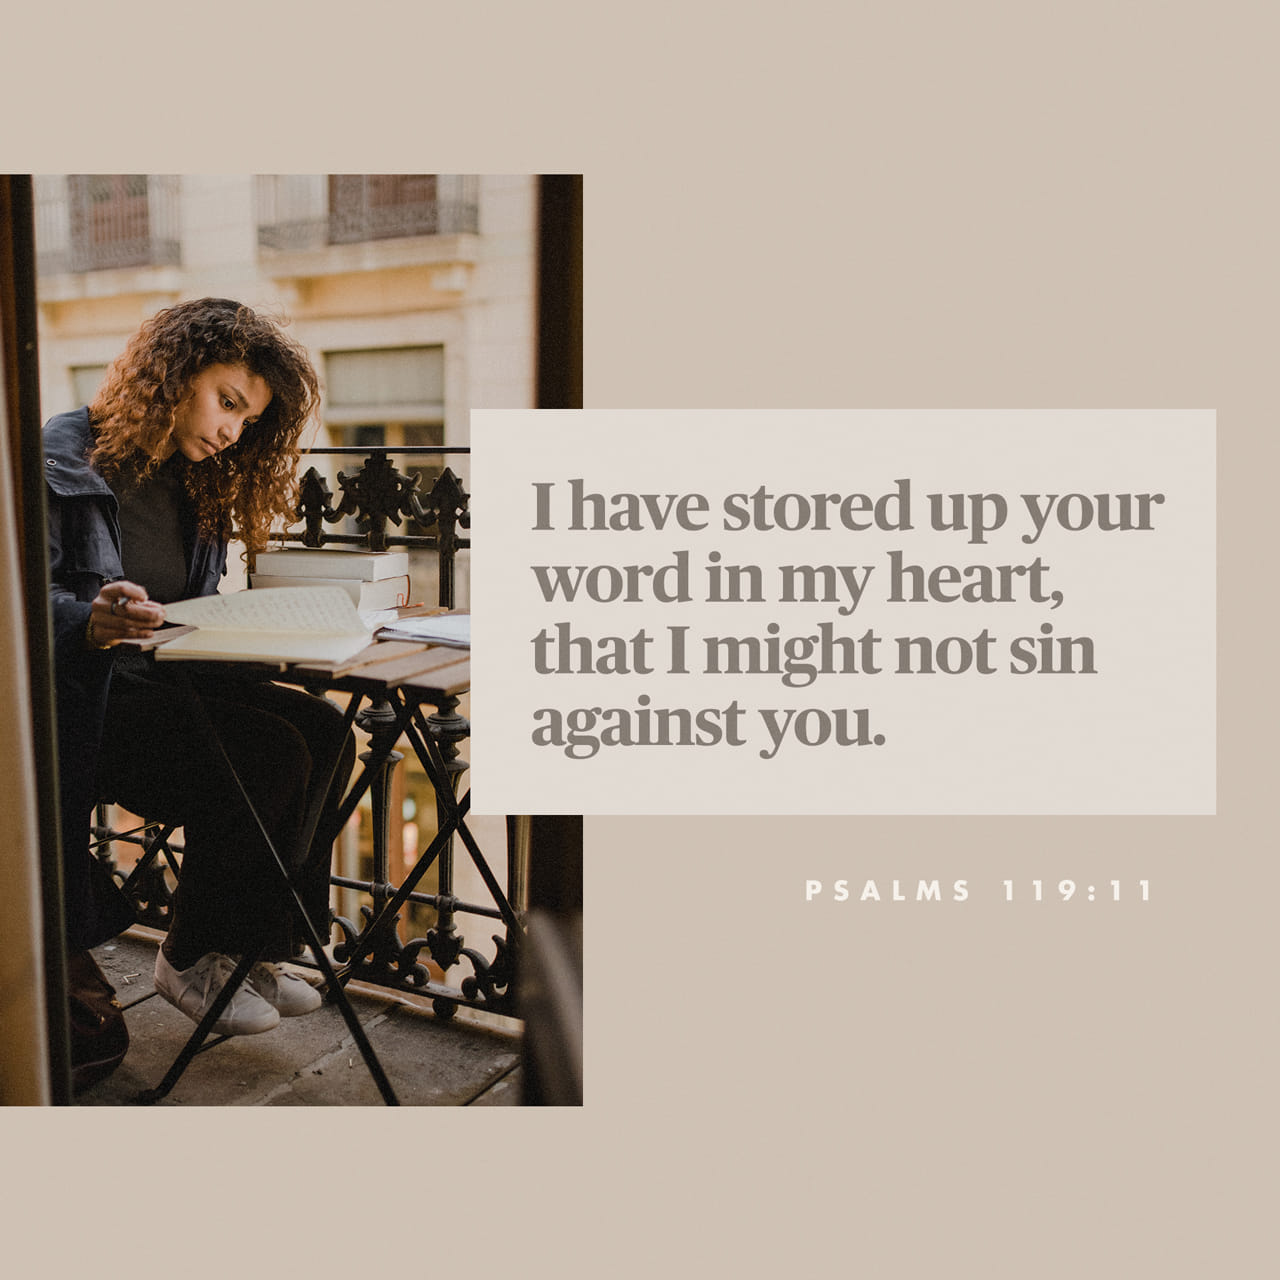 Psalms 119:11 Thy word have I hid in mine heart, that I might not sin against thee. | King James Version (KJV)